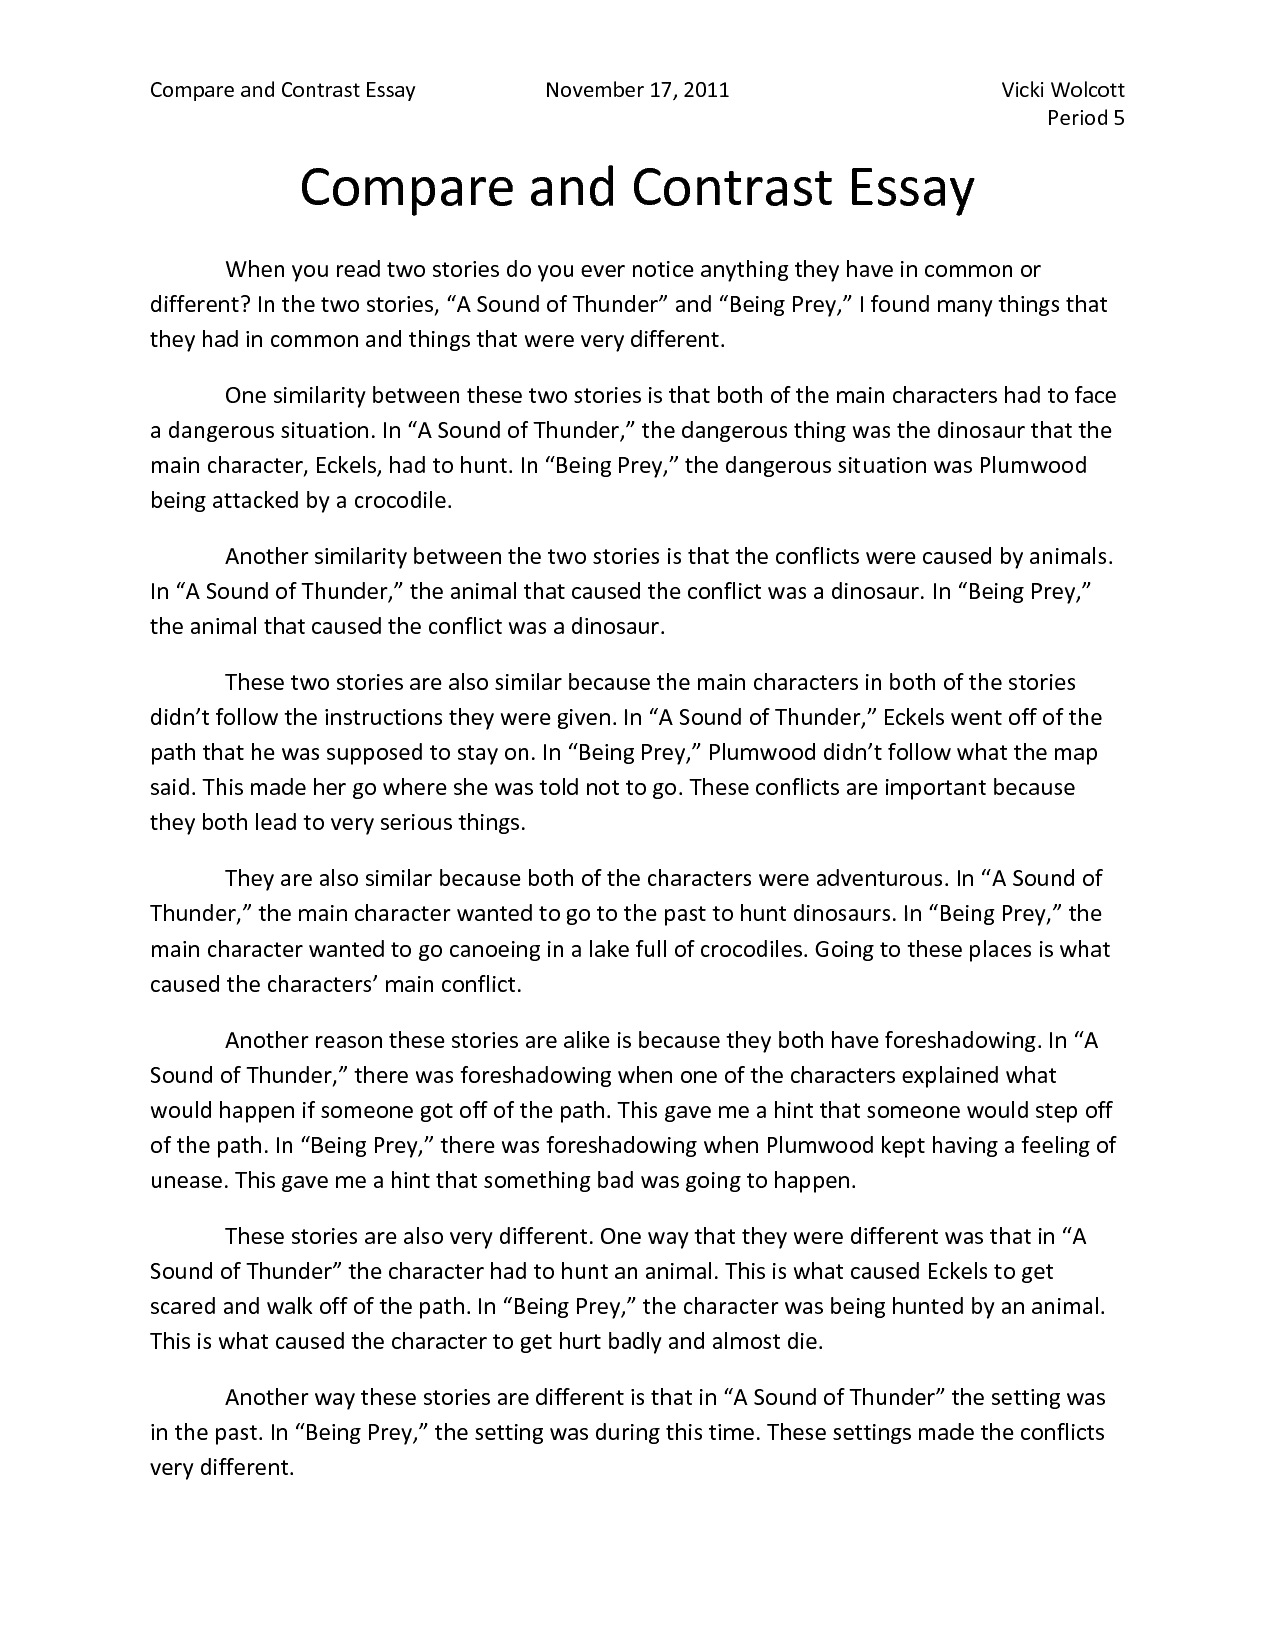 compare and contrast essay on sounder The compare/contrast essay is an excellent opportunity to help students develop their critical thinking and writing skills a compare and contrast essay examines two or more subjects by comparing their similarities and contrasting their differences compare and contrast is high on bloom's .